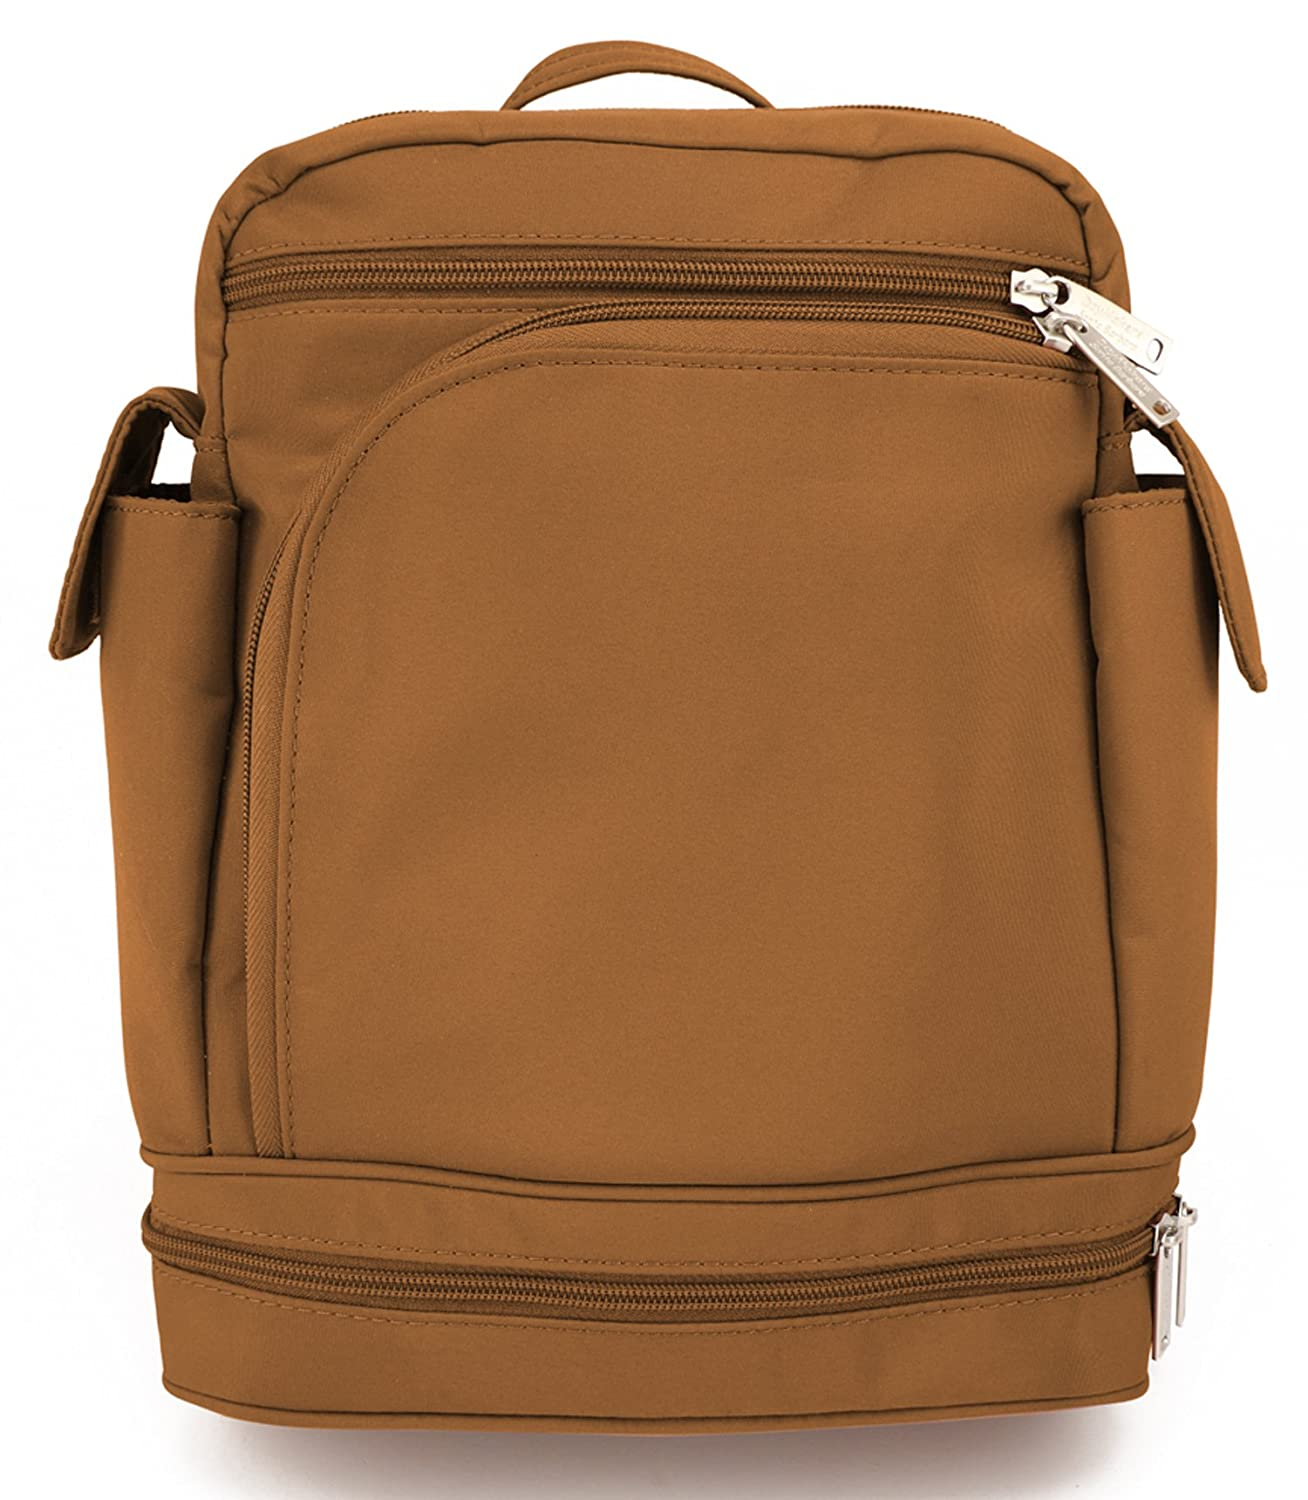 ce69c88a486c Be Safe Bags Anti-Theft Convertible Backpack (Medium, Camel)